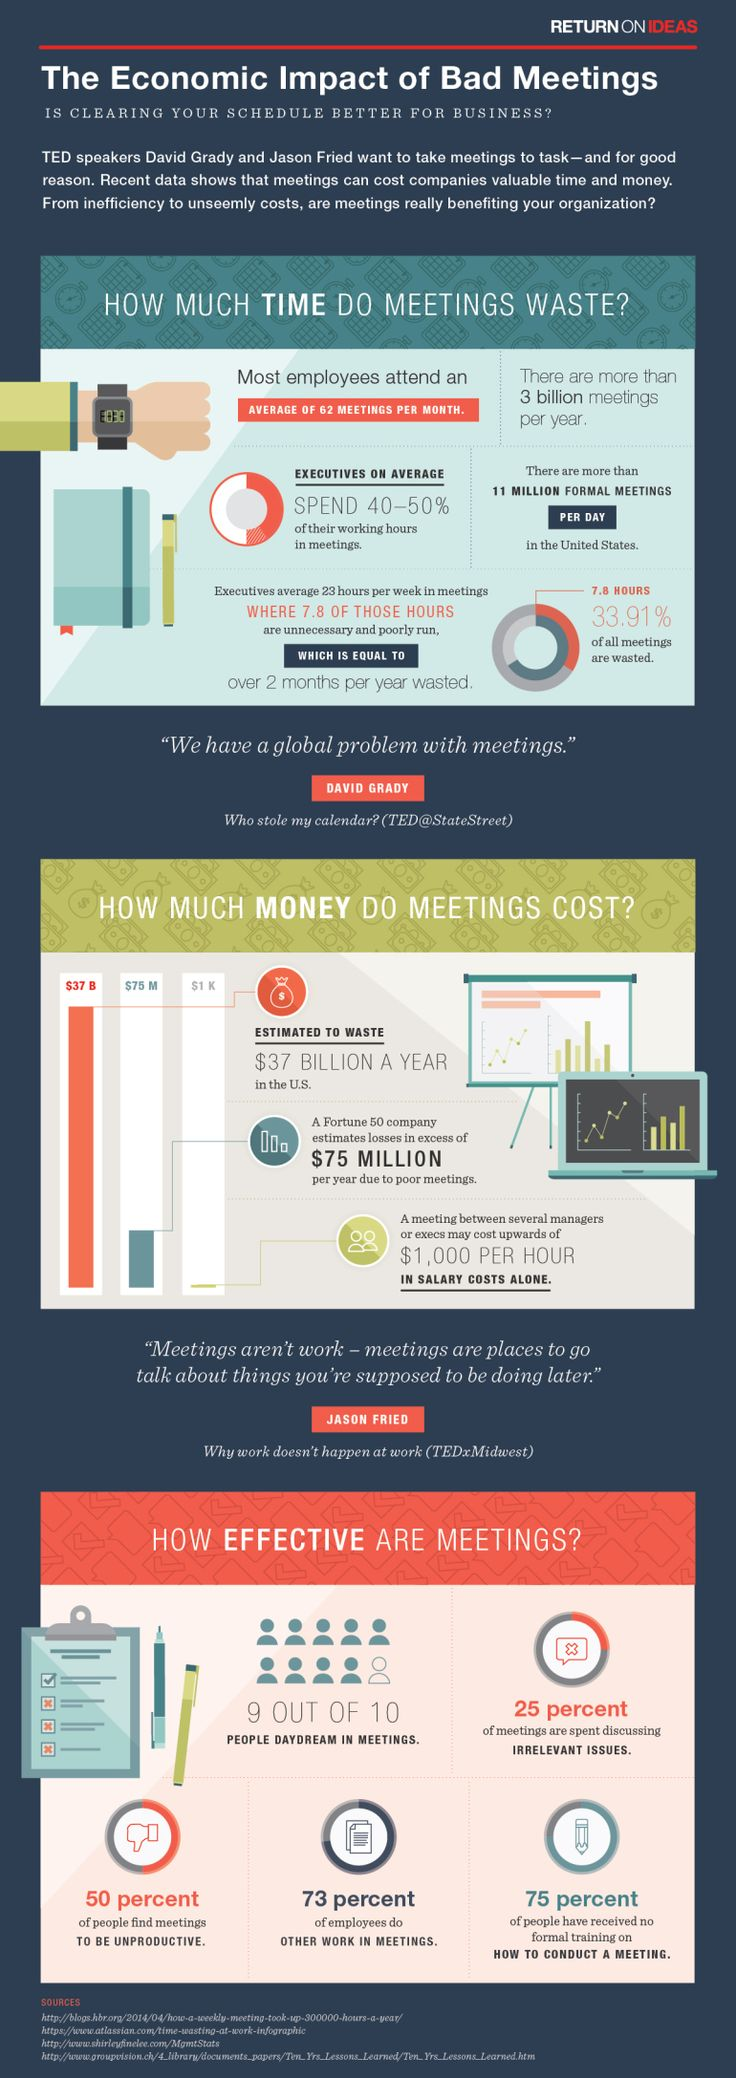 Everyone who has ever been to a meeting needs to read this one! The economic impact of bad meetings | ideas.ted.com